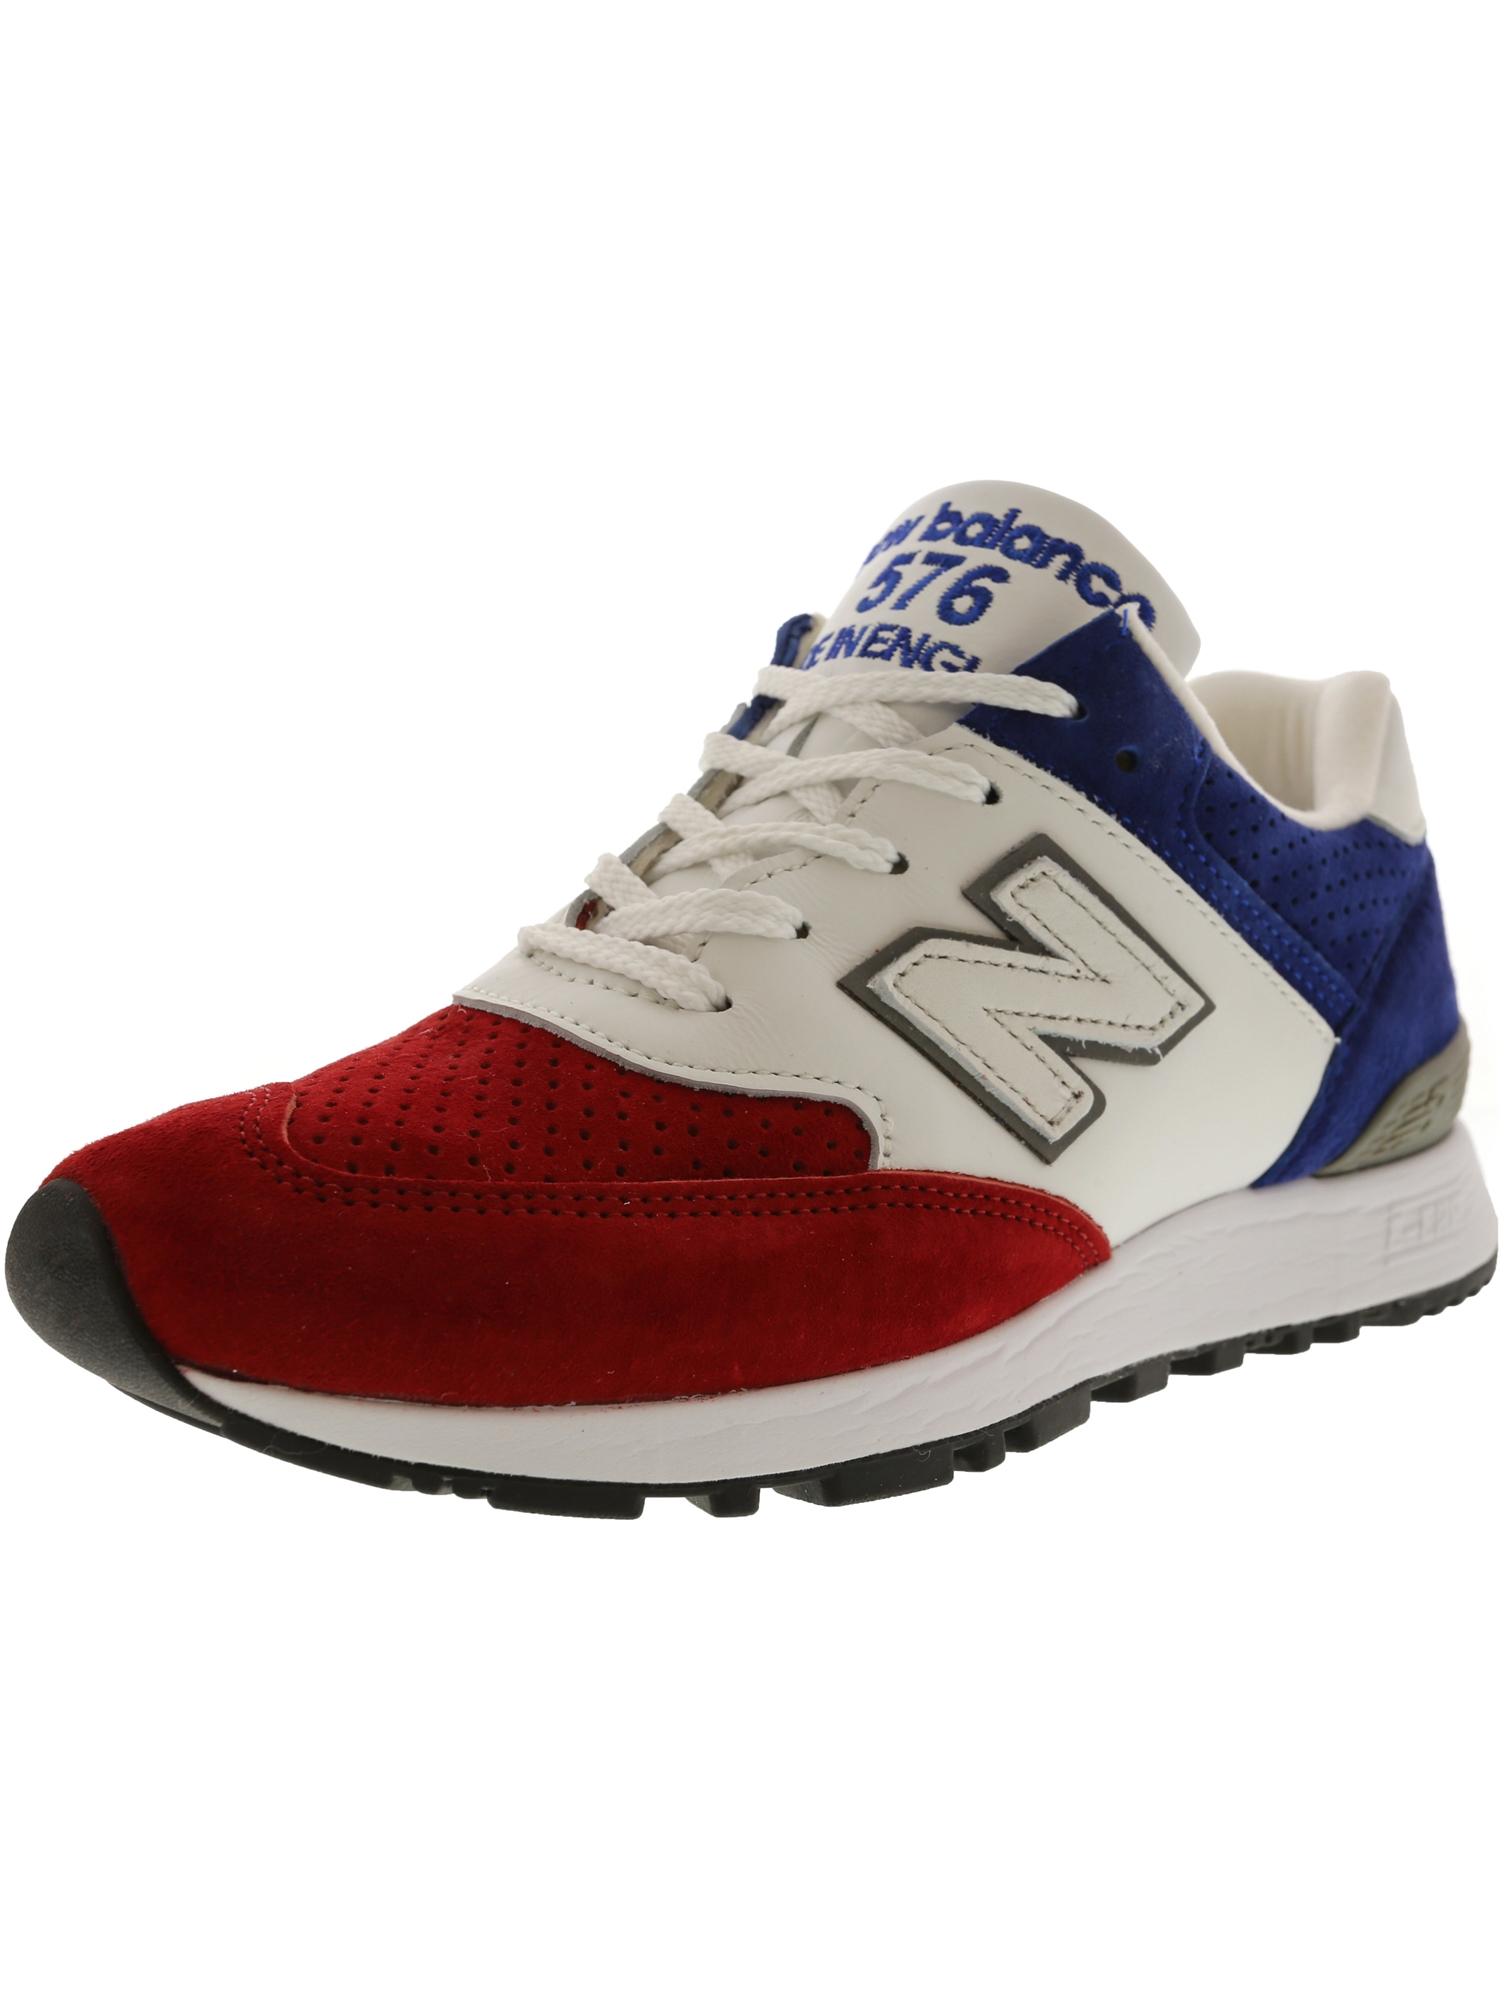 New Balance Women's W576 Rbw Ankle-High Suede Running Shoe - 7M